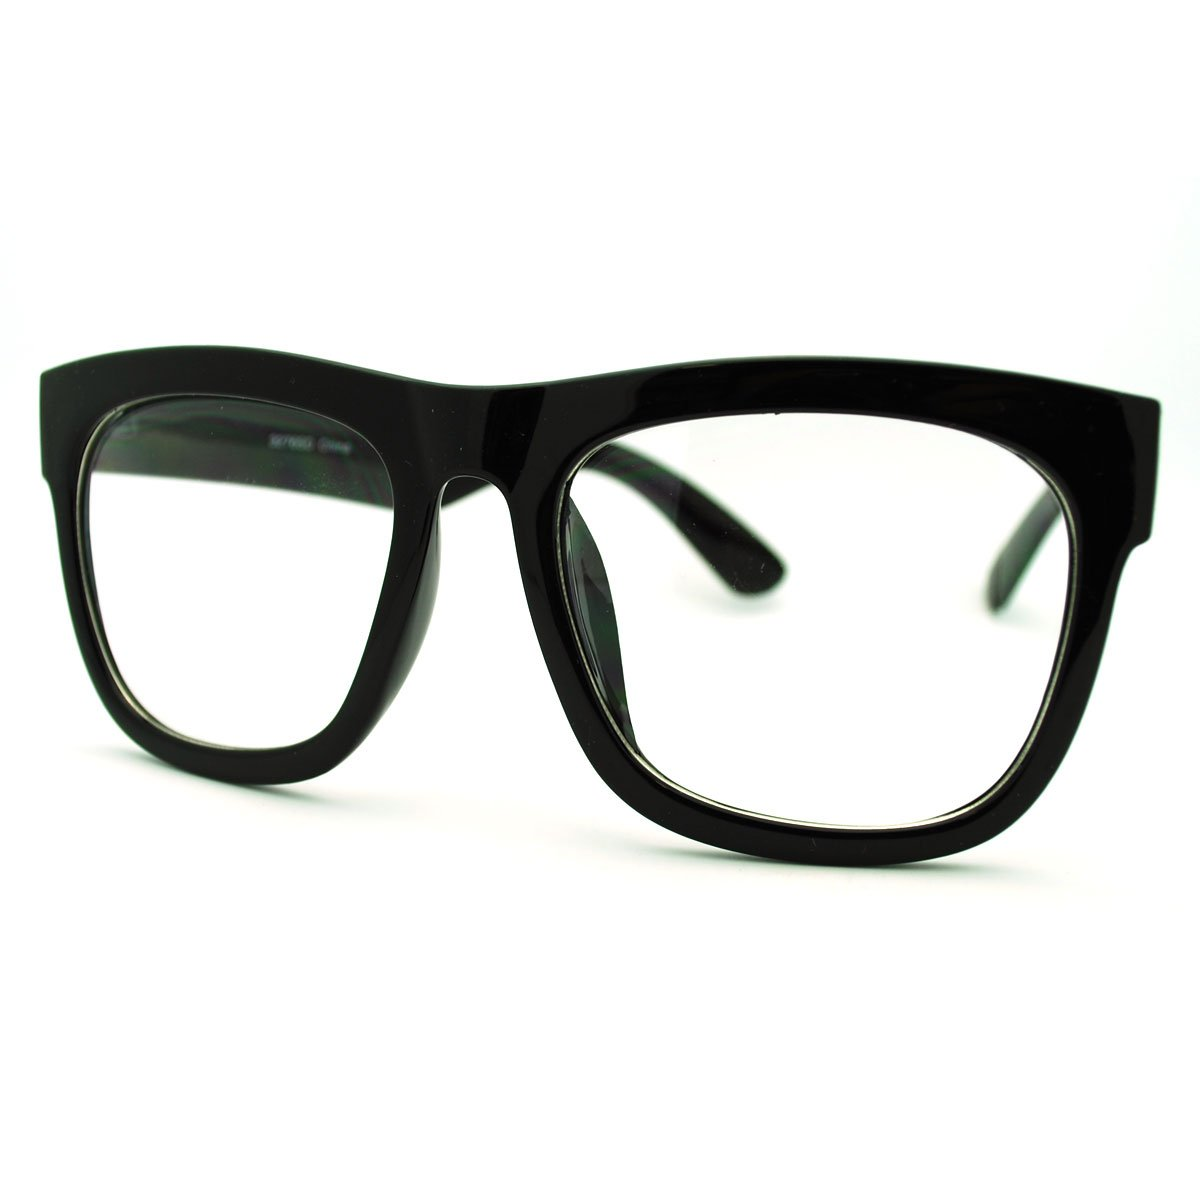 e221dfeab40 Get Quotations · Black Oversized Square Glasses Thick Horn Rim Clear Lens  Frame